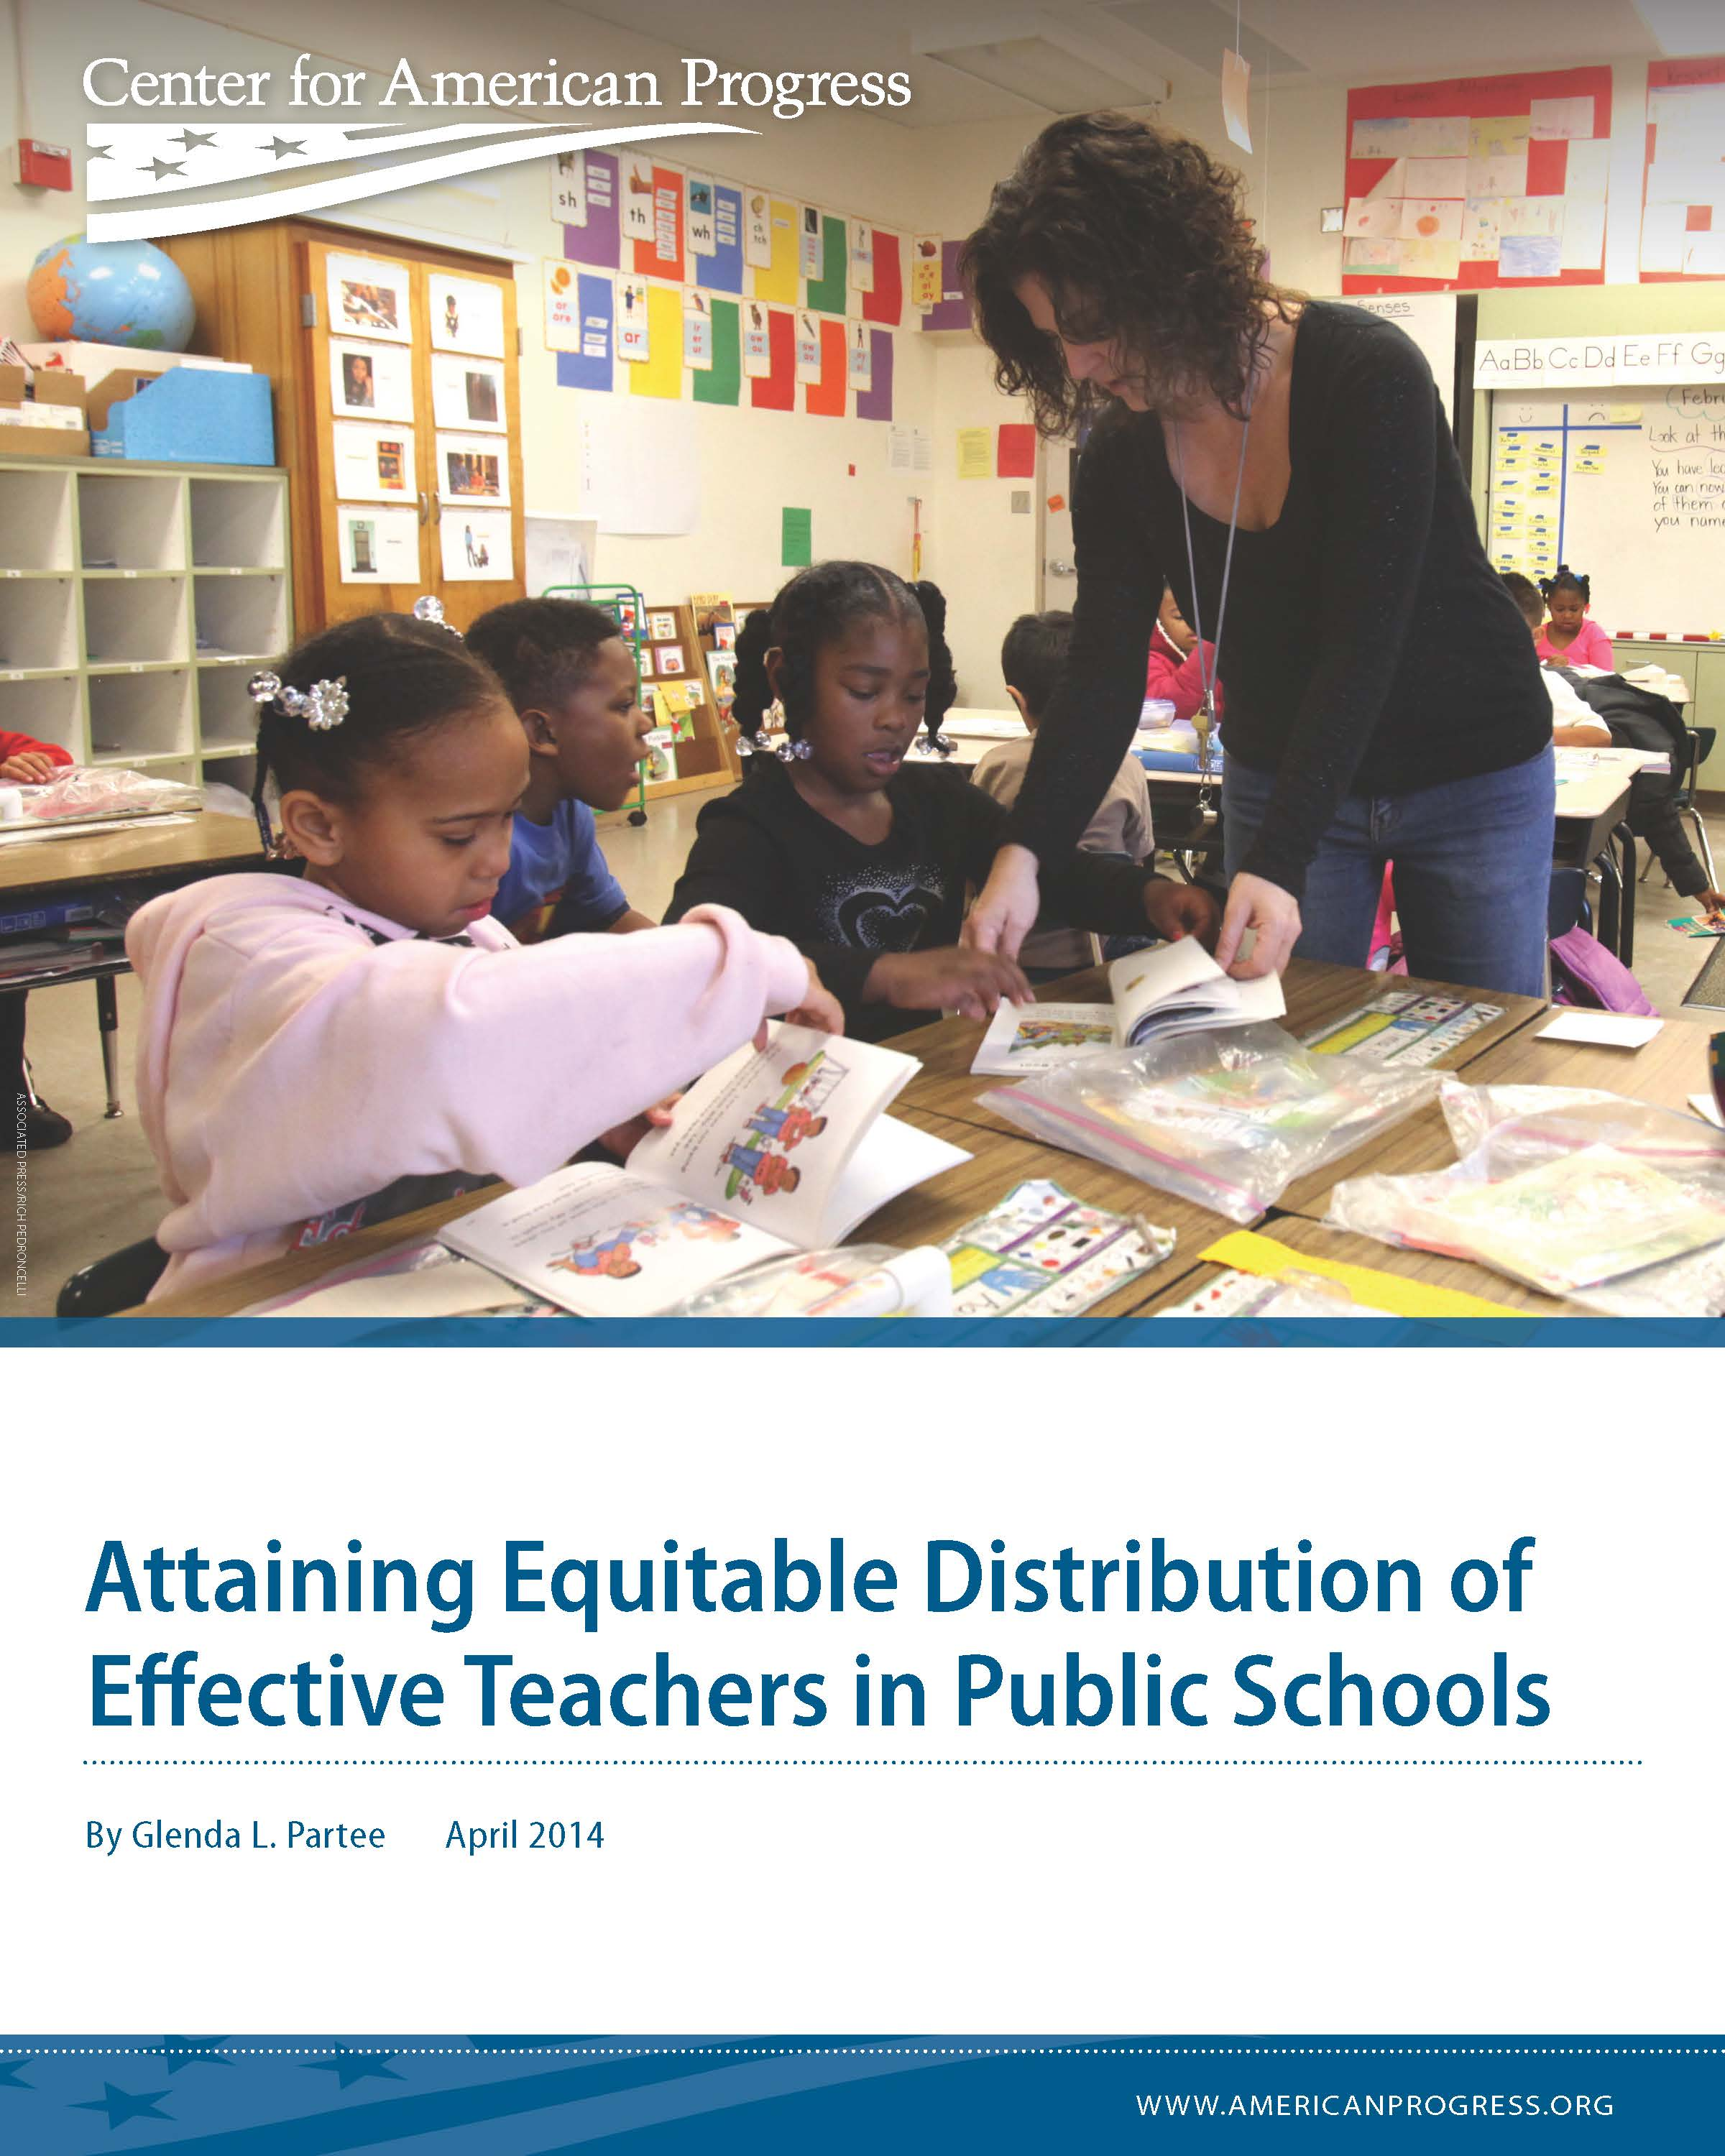 Attaining Equitable Distribution of Effective Teachers in Public Schools